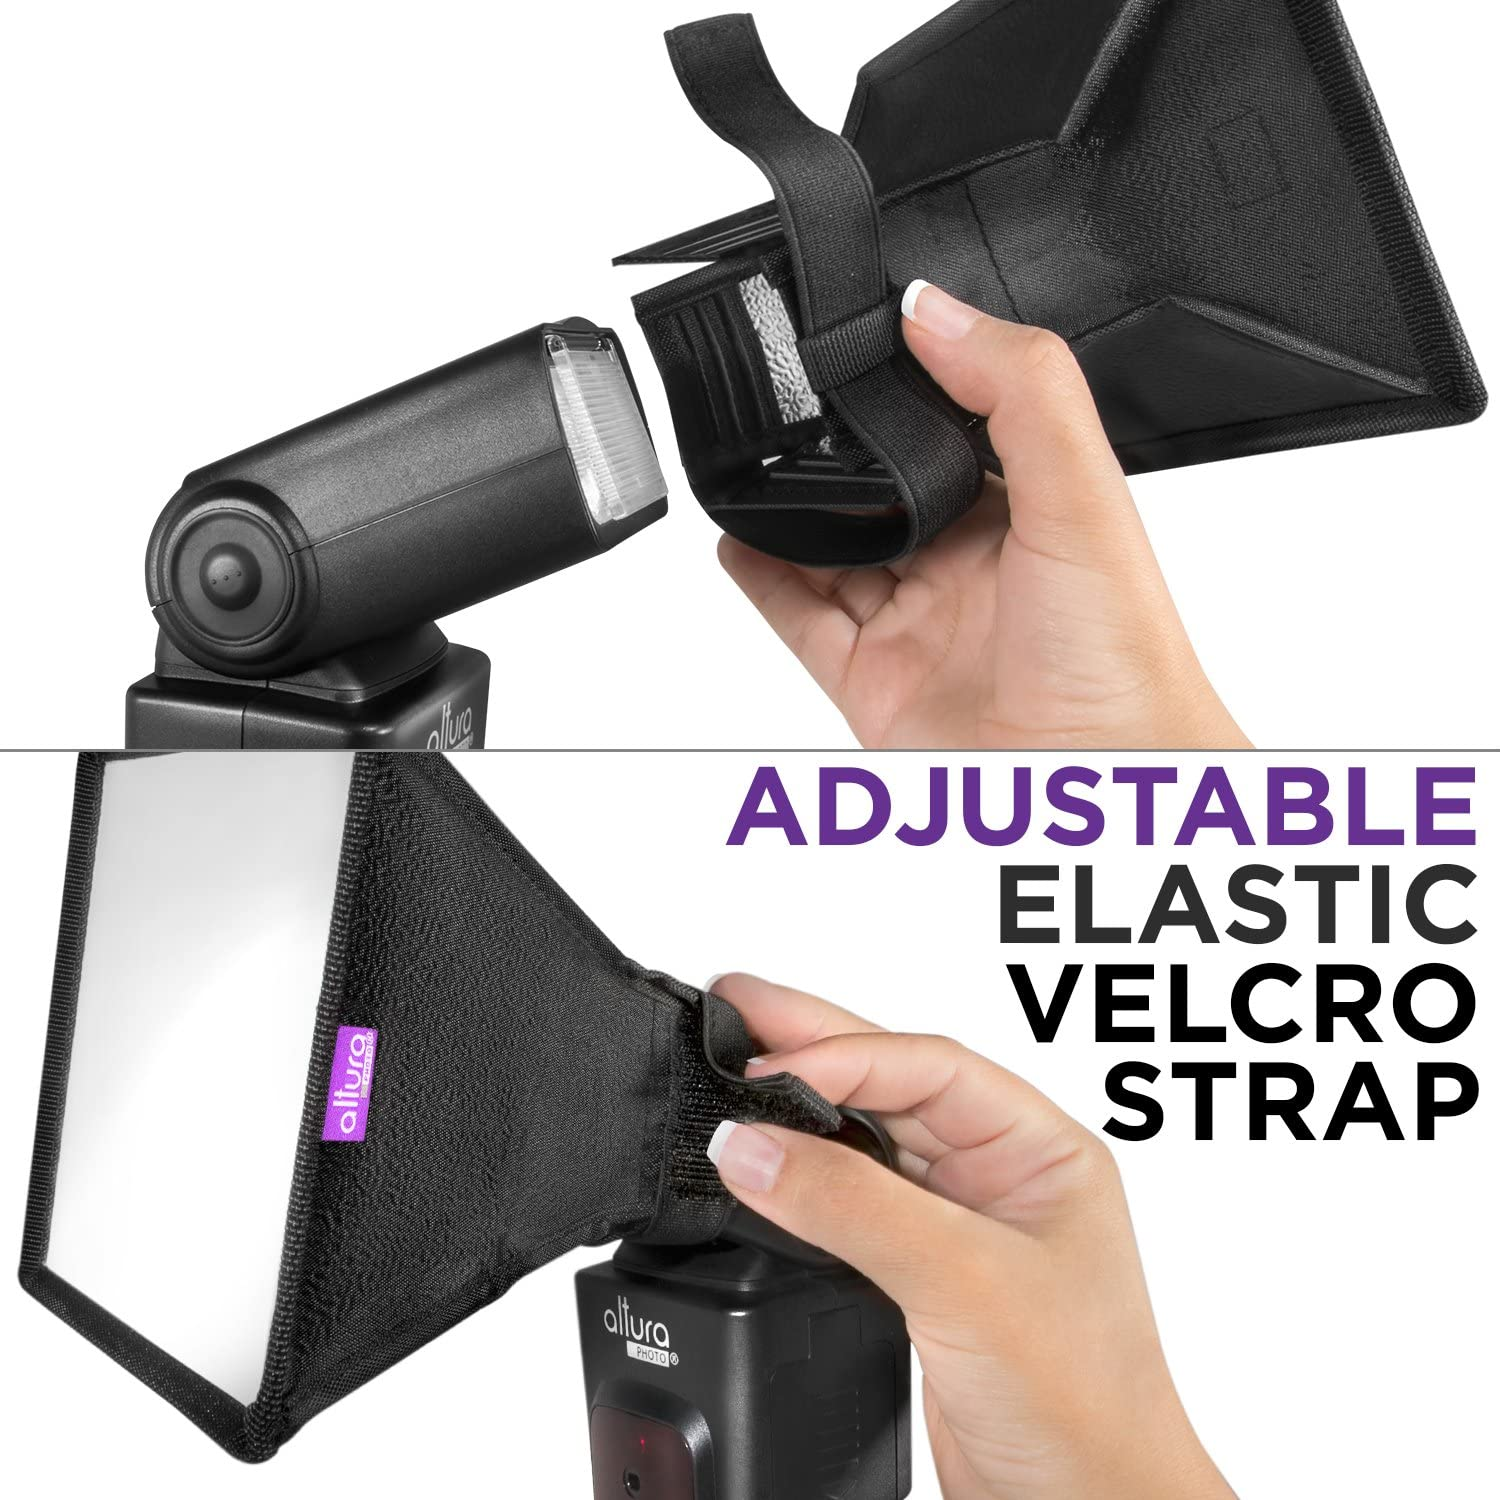 """for Canon Flash Diffuser Light Softbox 11x8/"""" by Altura Photo Universal, Collapsible with Storage Pouch Yongnuo and Nikon Speedlight"""